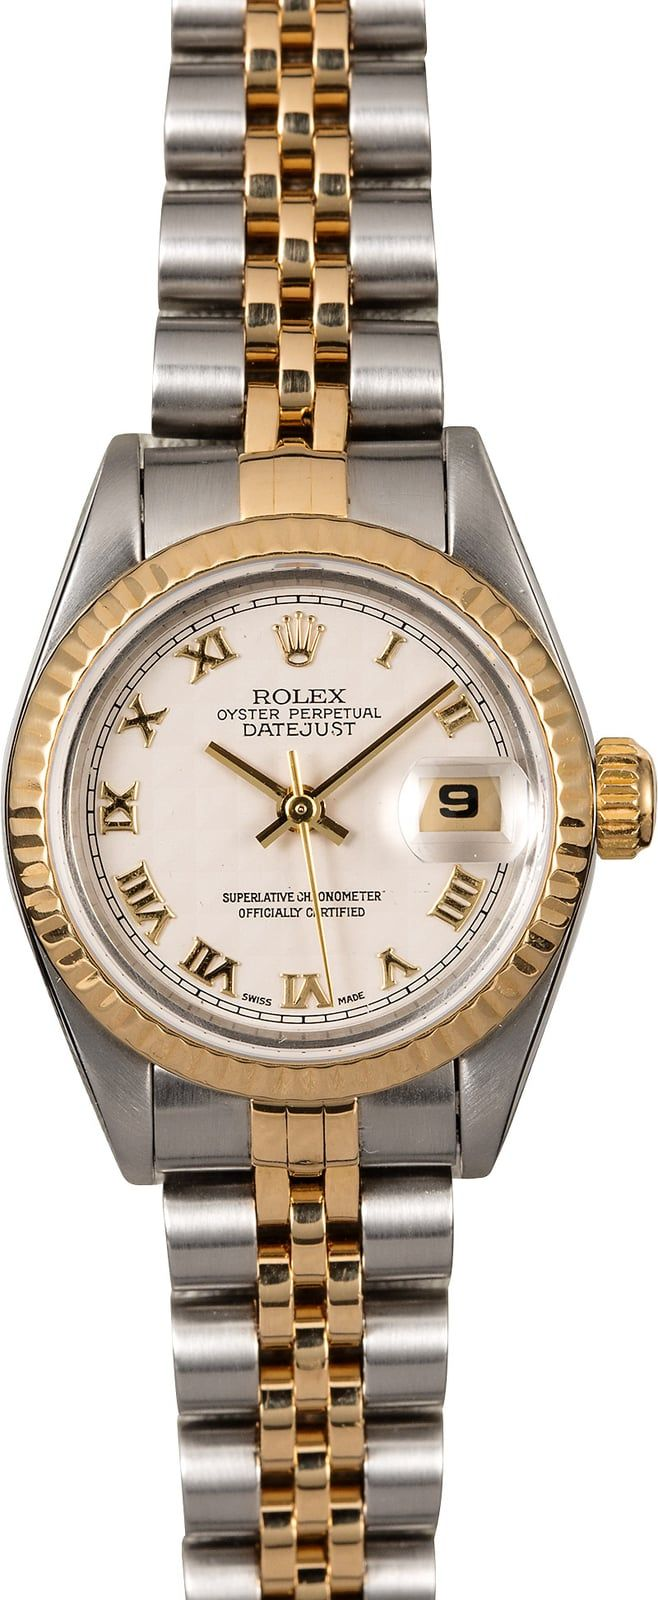 Manufacturer: Rolex   Model: Datejust 69173   Serial/Year: W - 1995   Grade: (What's This?) II/III slight bracelet stretch   Gender: Ladies   Movement/Features: Automatic 2135 movement w/ date, Quickset, scratch-resistant sapphire crystal, waterproof screw-down crown   Case: Stainless steel w/ yellow gold fluted bezel (26mm)   Dial: Ivory pyramid w/ Roman numeral hour markers   Bracelet: Stainless steel and yellow gold Jubilee w/ Fliplock clasp   Box &am...